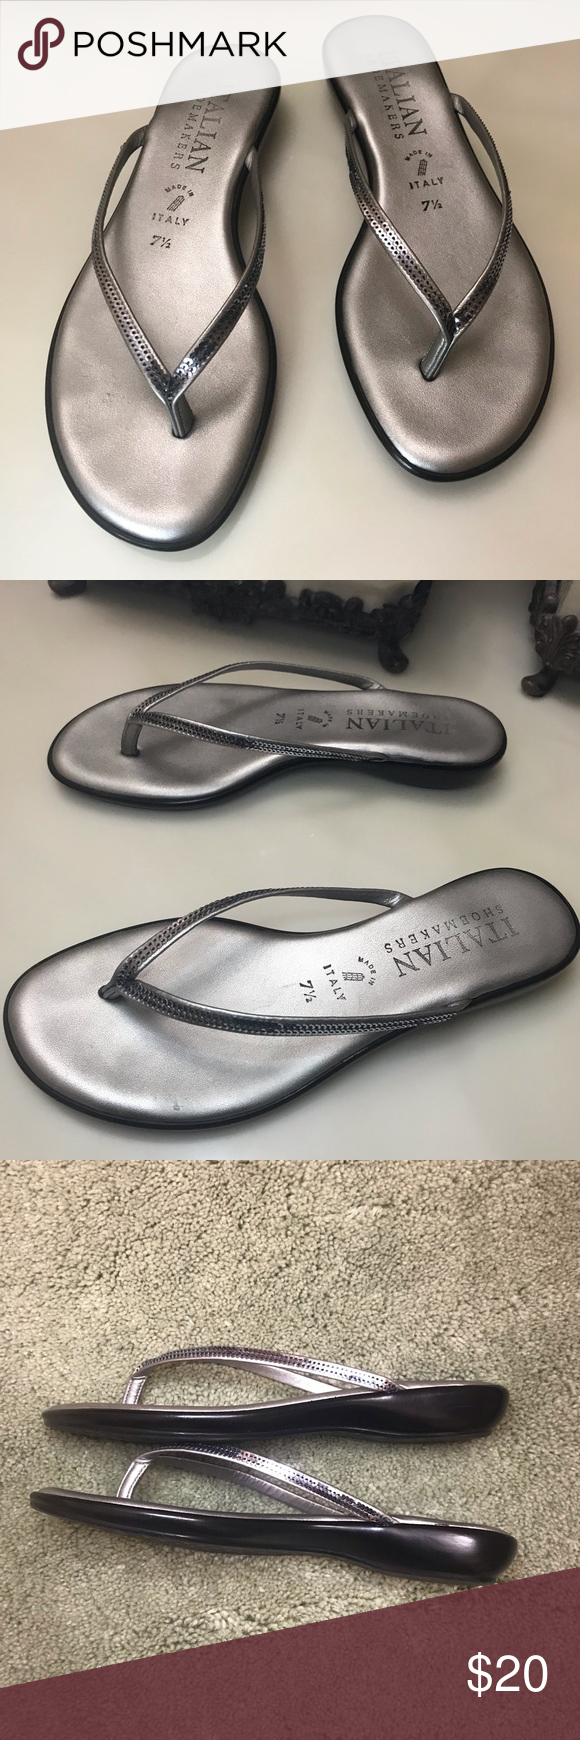 057e8d1b4b7 Italian Shoemaker Sequin Sandals Good Condition - Worn multiple times  •Scuffs on heel. No tears on top. •Size  It says 7 1 2